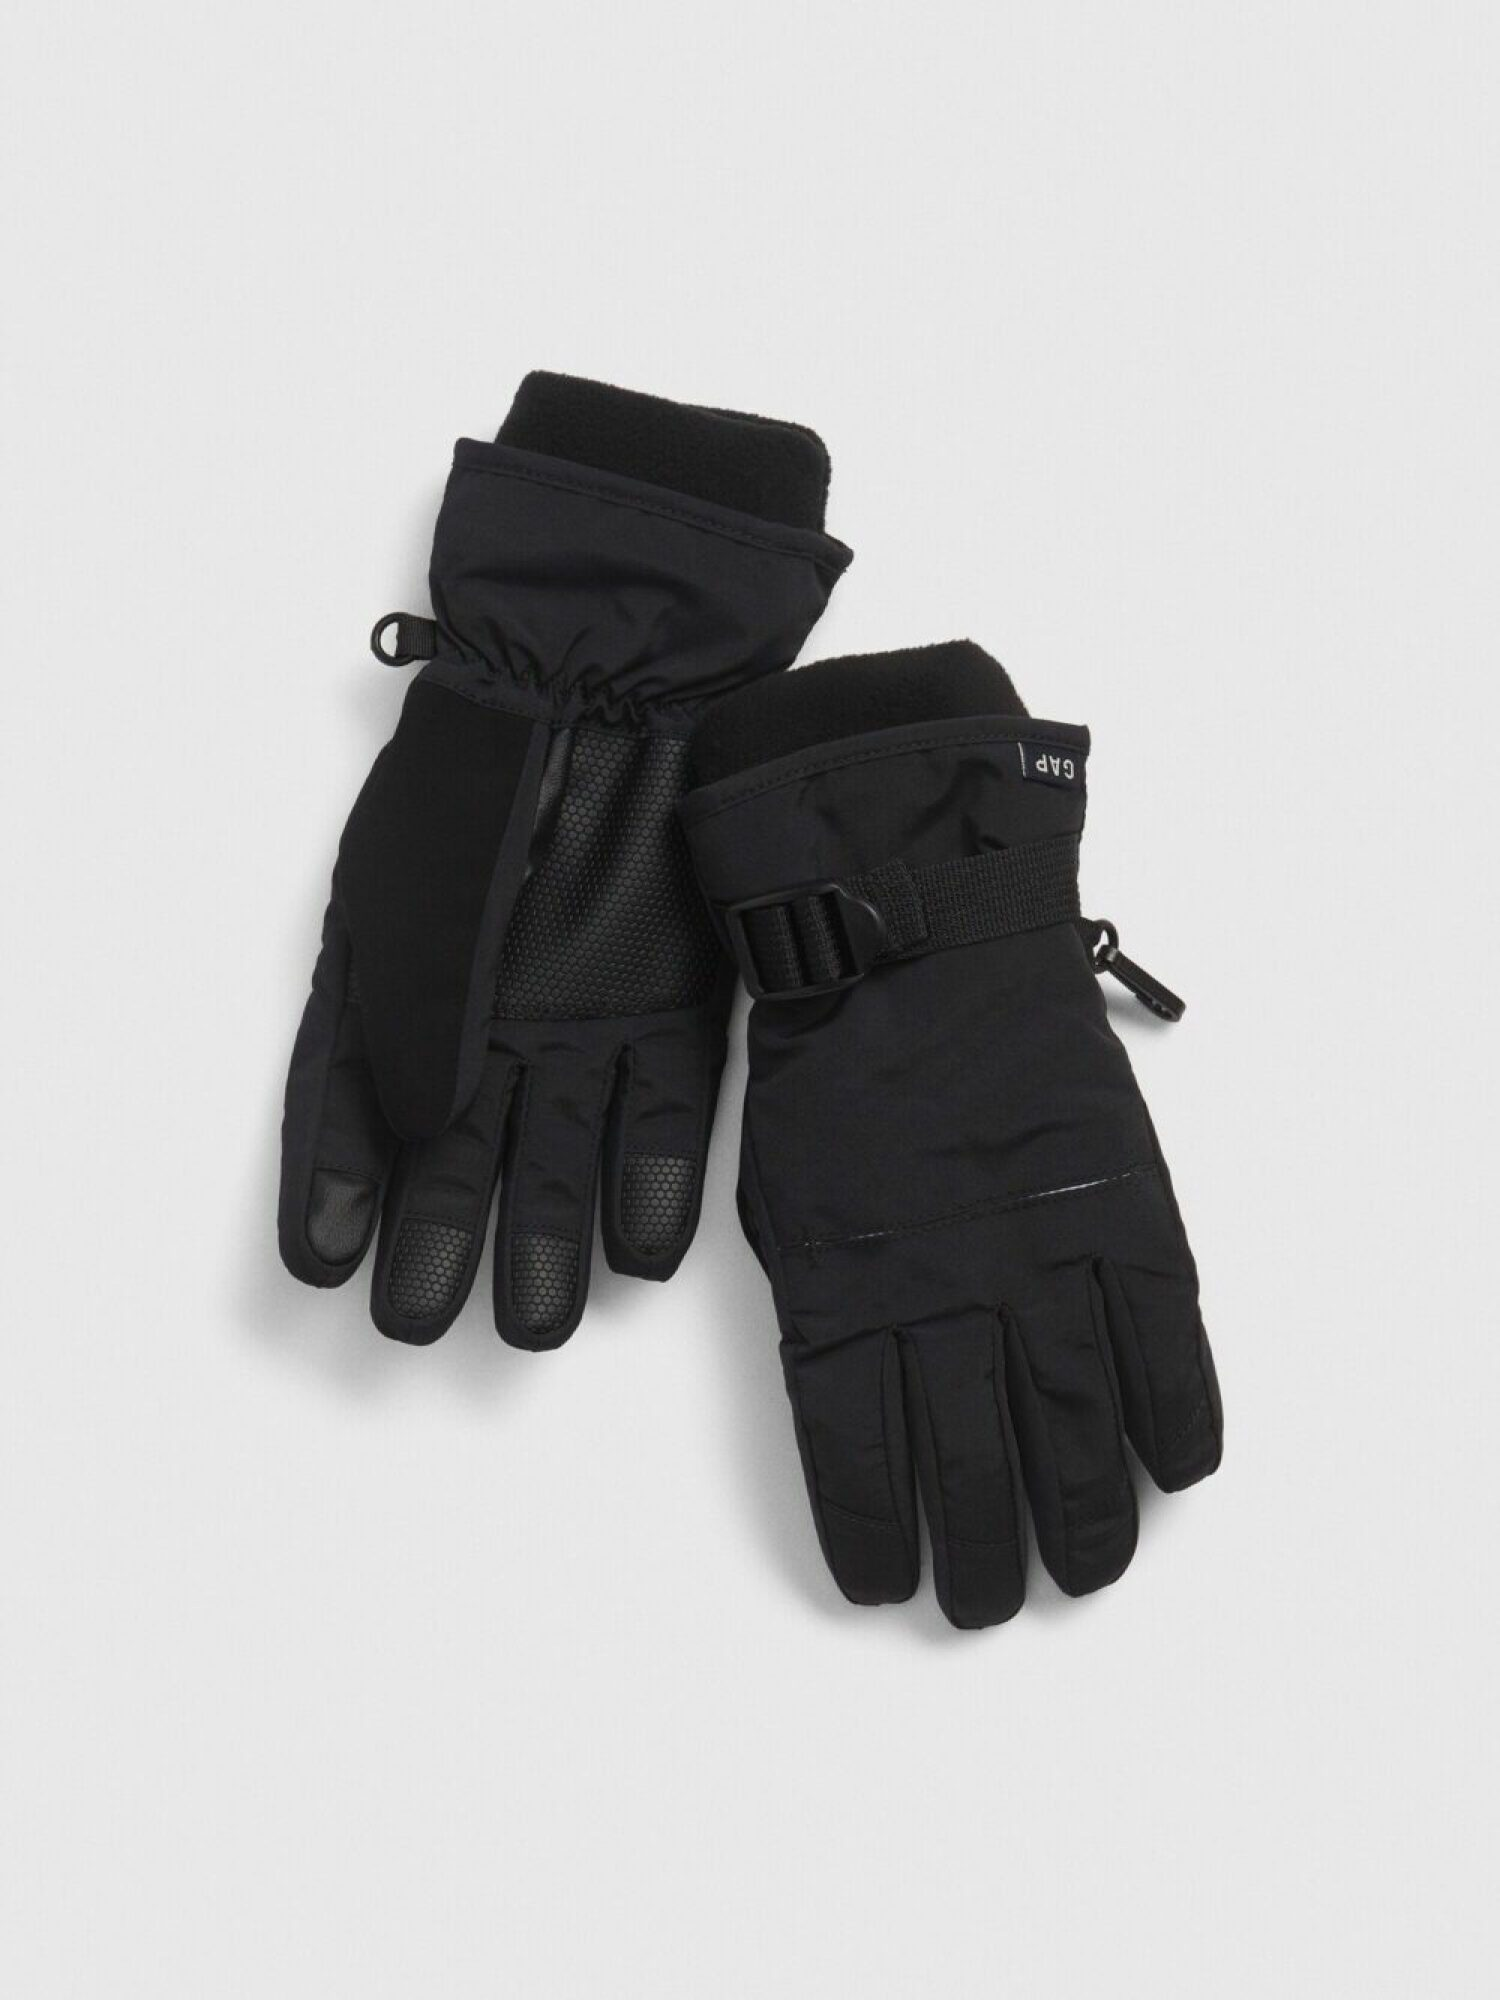 Gap Kids Cold Control Gloves - great for winter cycling